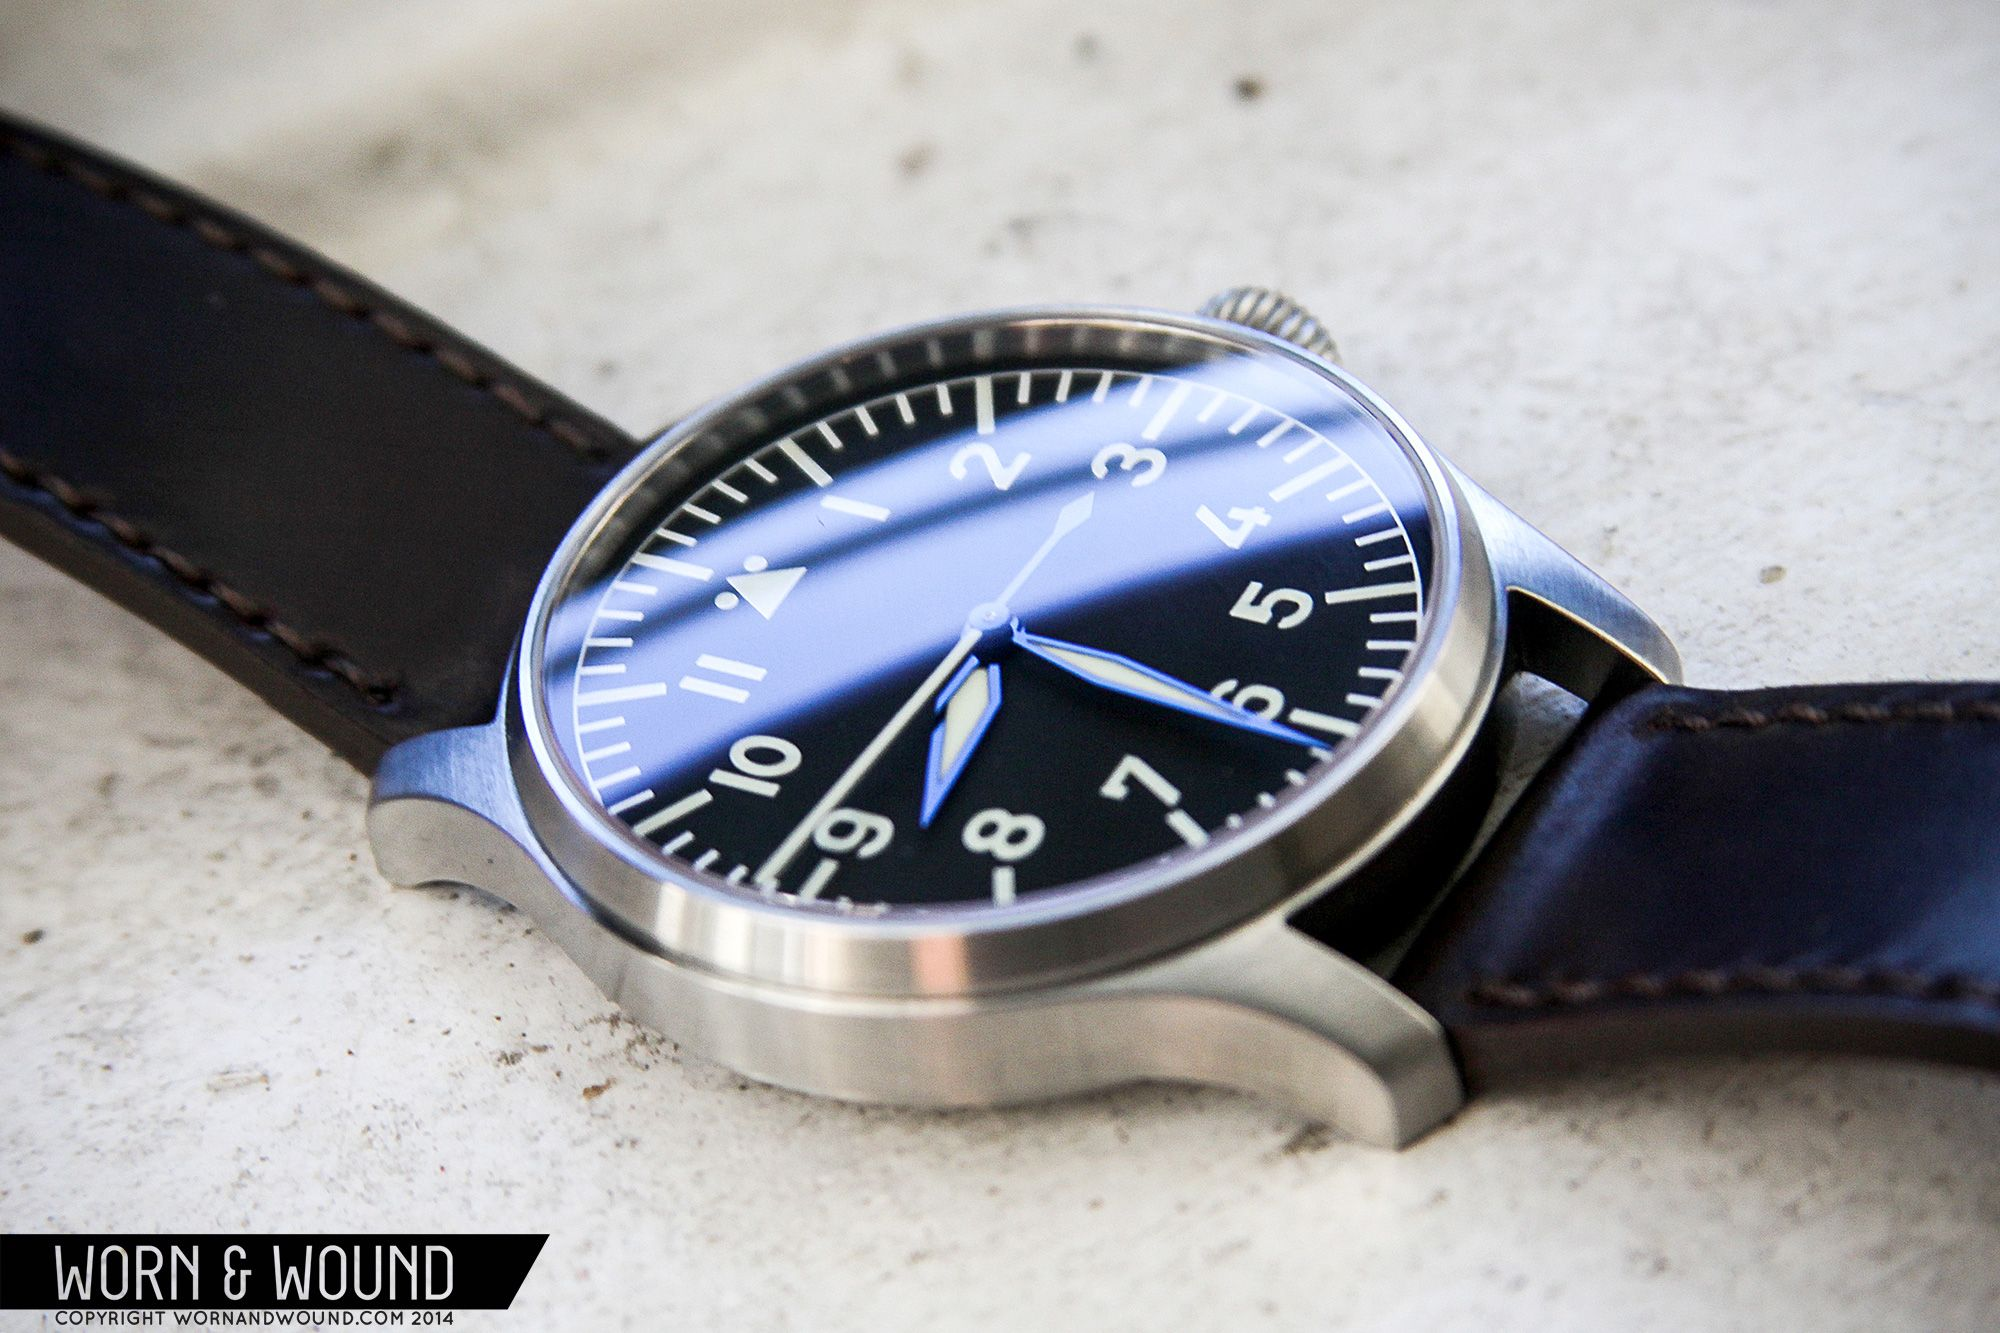 watches worn stowa prodiver pro schauer review seatime lume wound watch